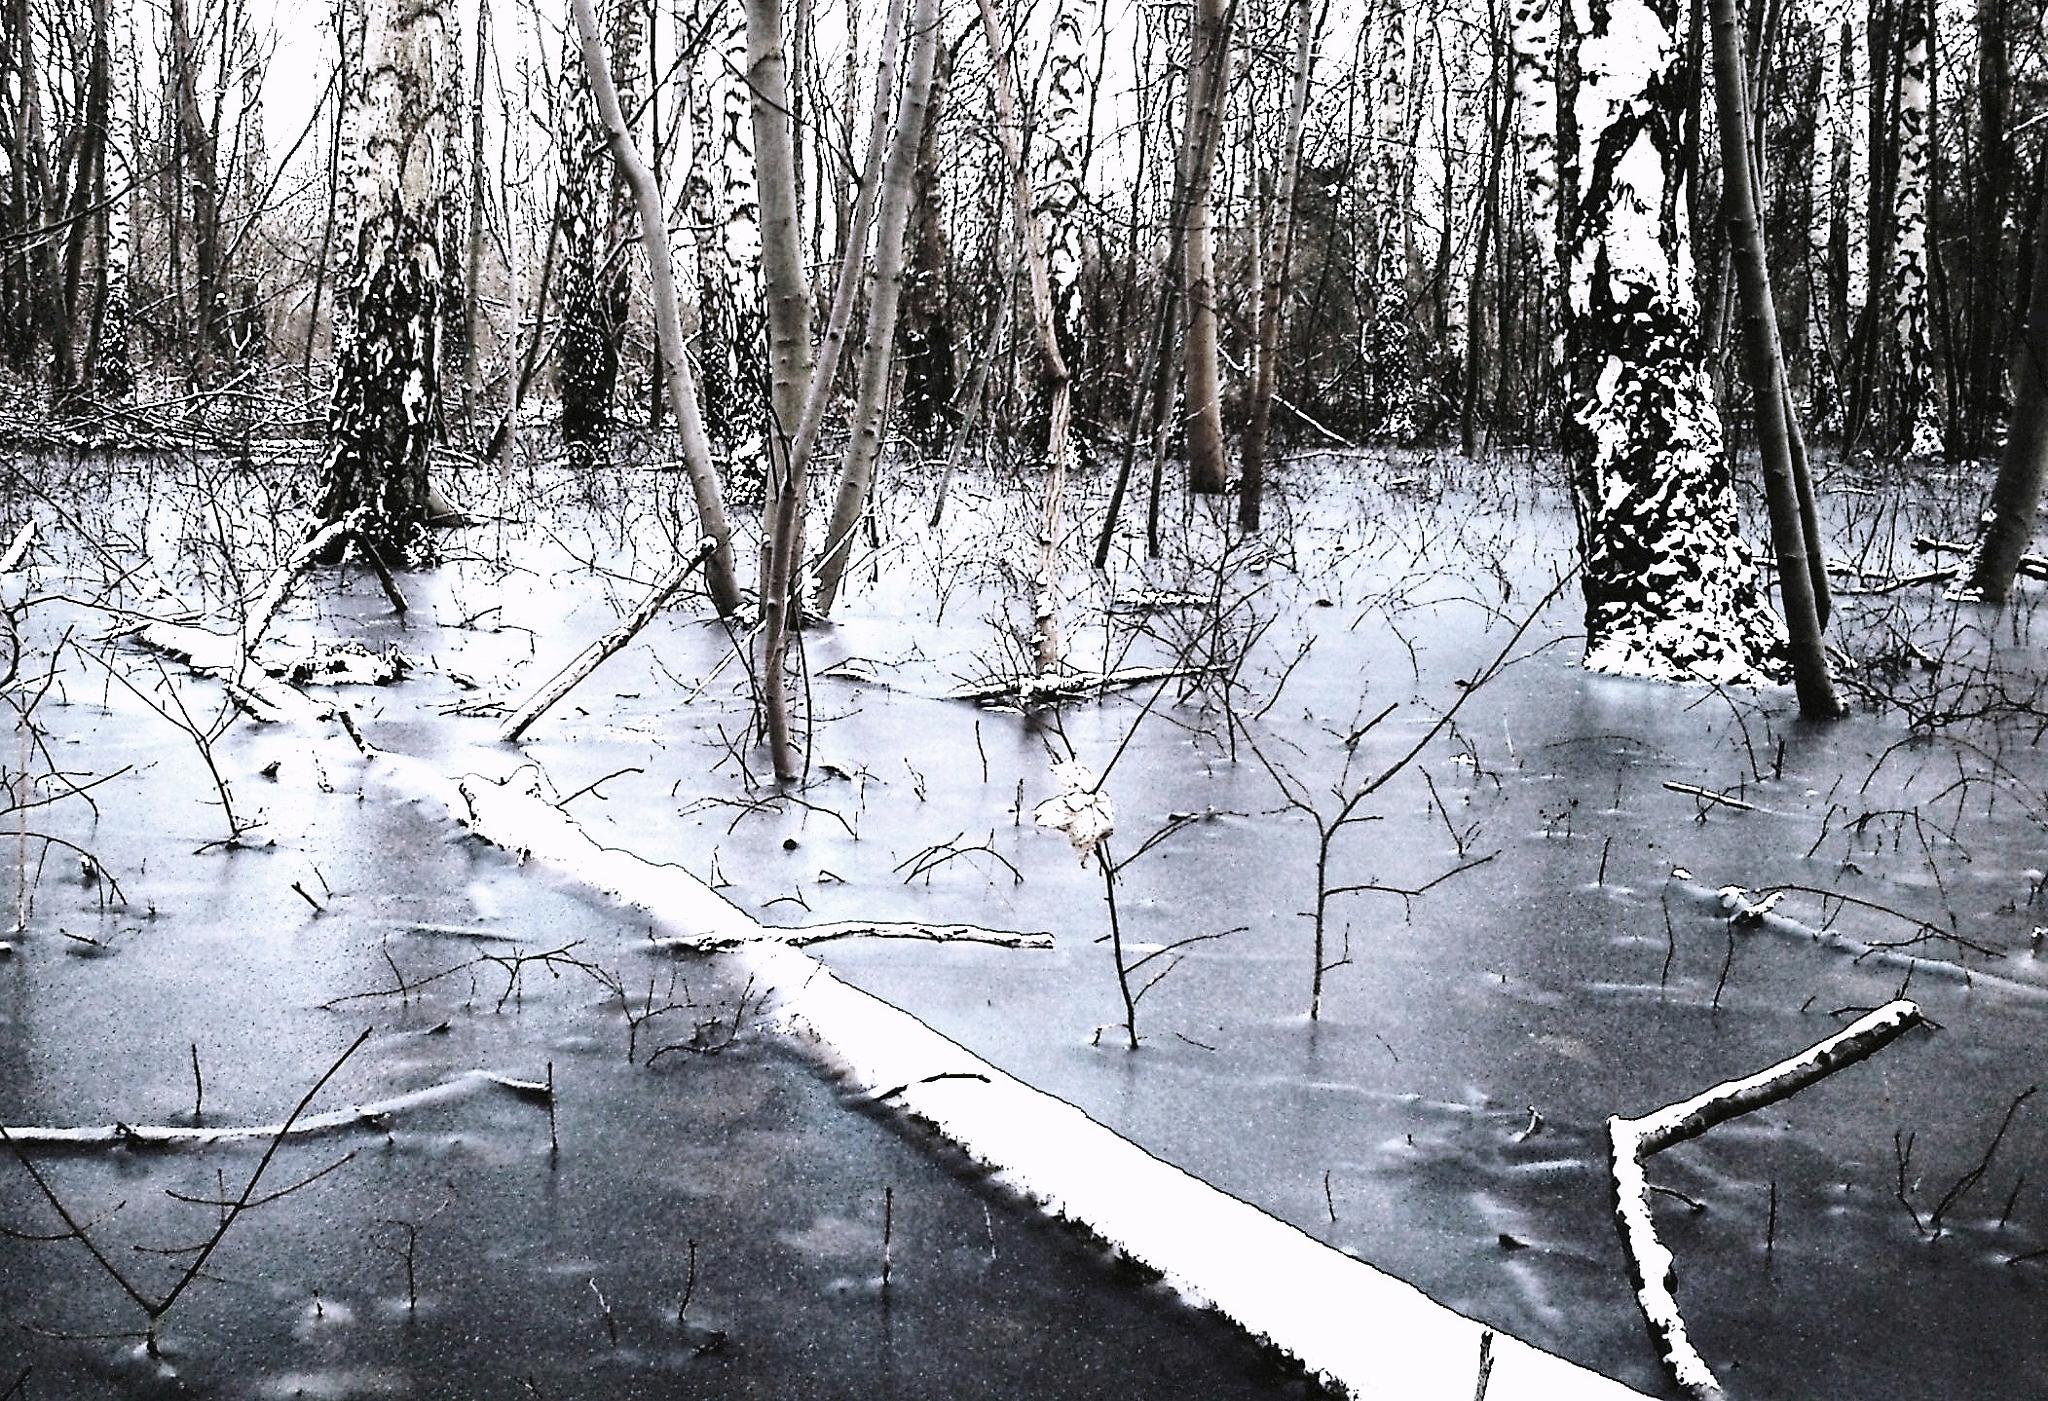 The flooded forest froze to ice tonight 2. by MiaE